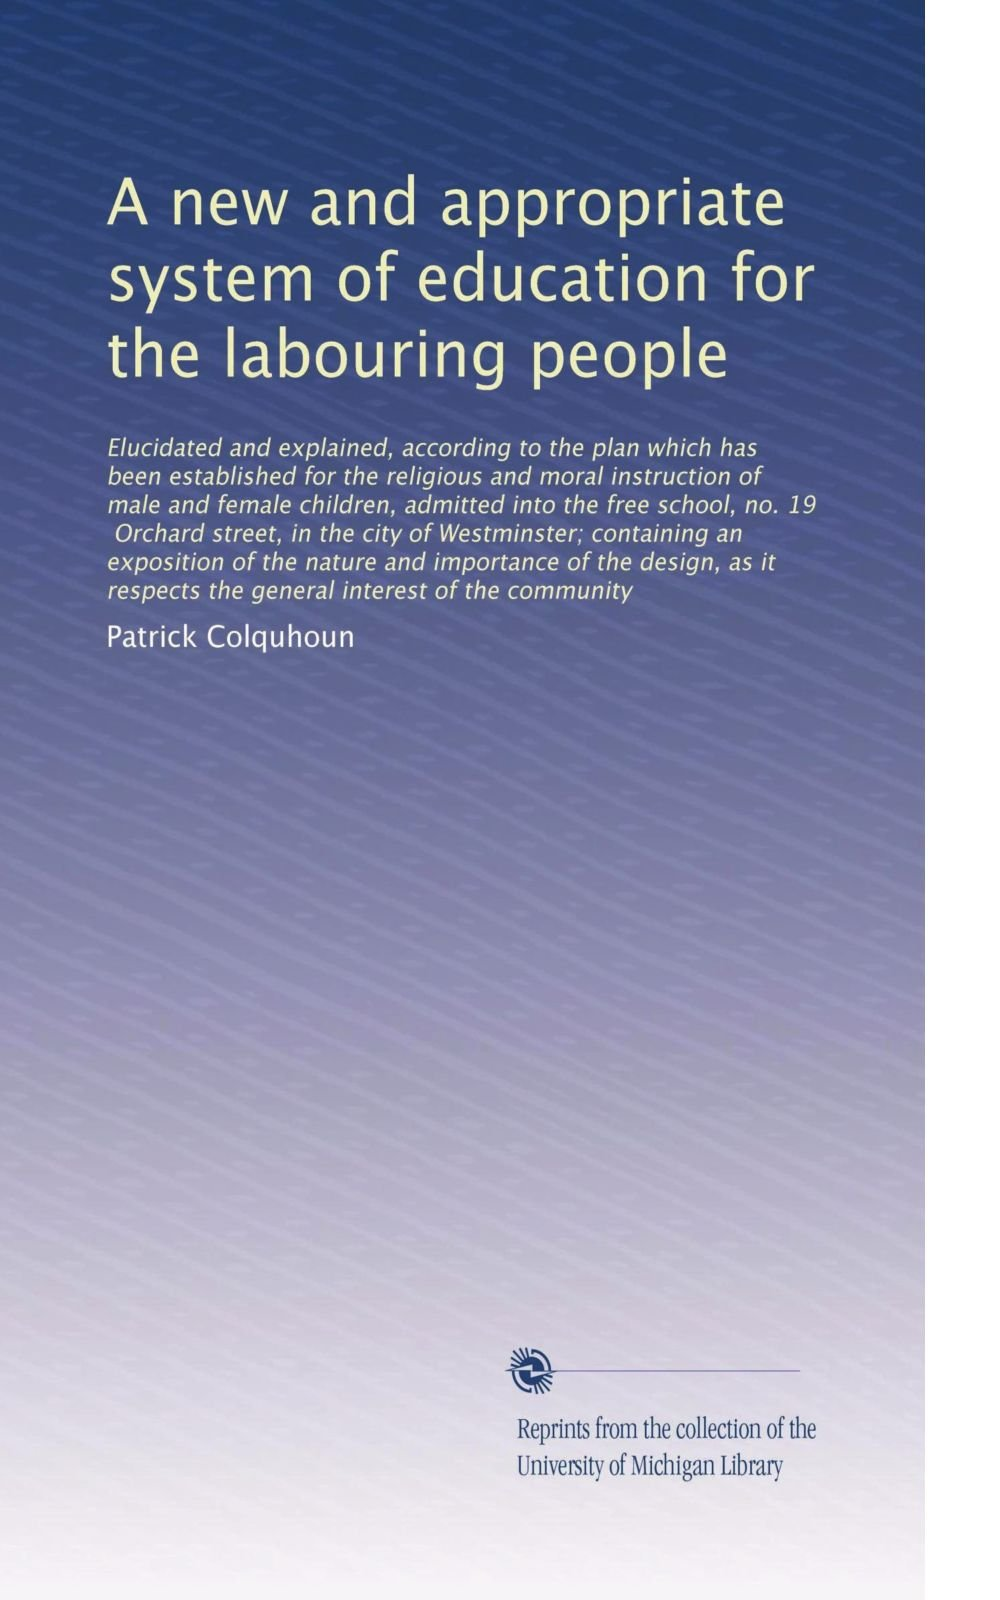 What Is Appropriate Education For >> A New And Appropriate System Of Education For The Labouring People